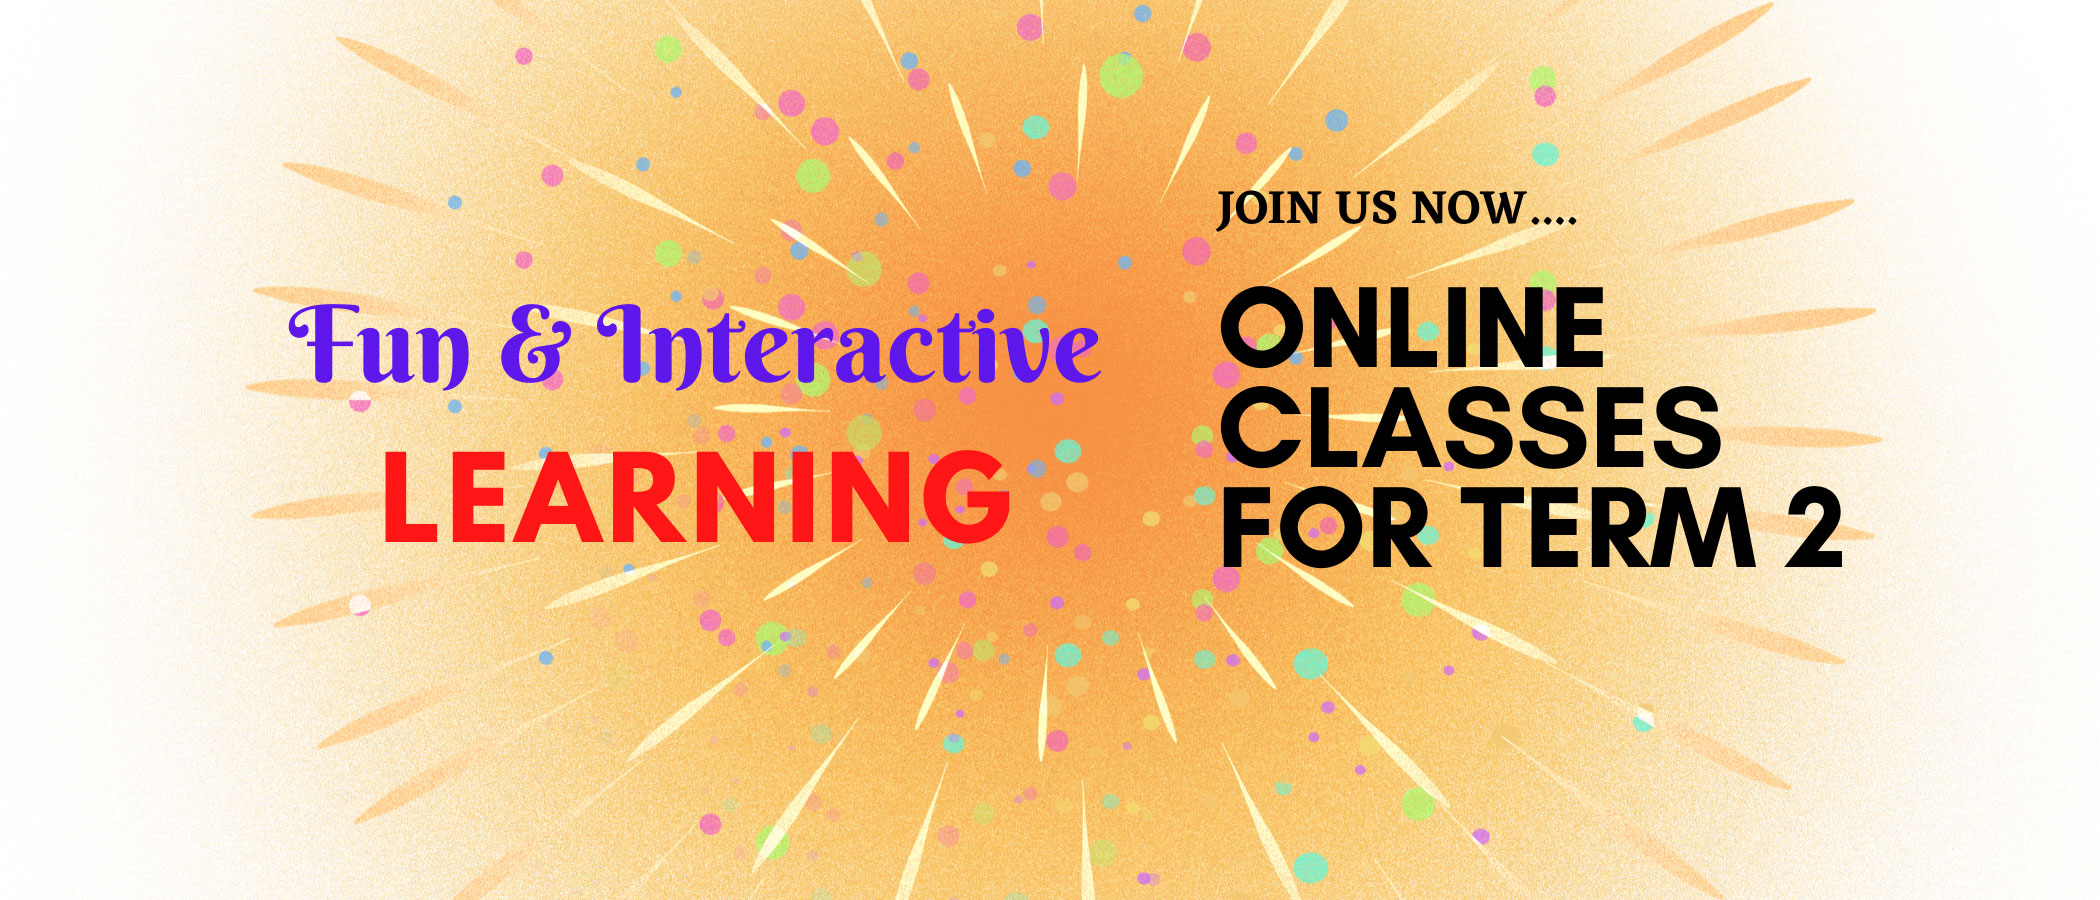 Online Classes For Term 2